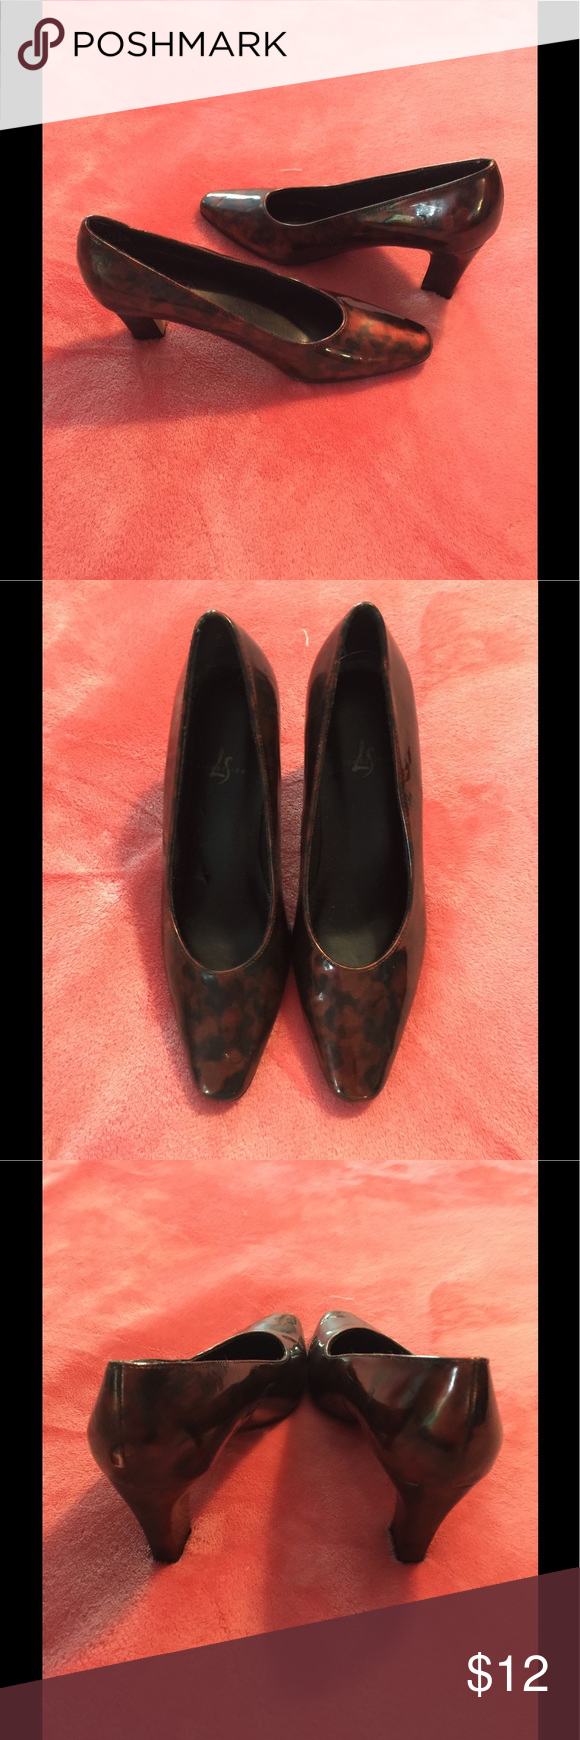 LifeStridesize 5.5 dress shoes Only worn a few times, beautiful LifeStride bronze and black kind of leopard print with 2.5 inch heel. Has a couple of scratches on heels but not really too noticeable when wearing. Shoes Heels